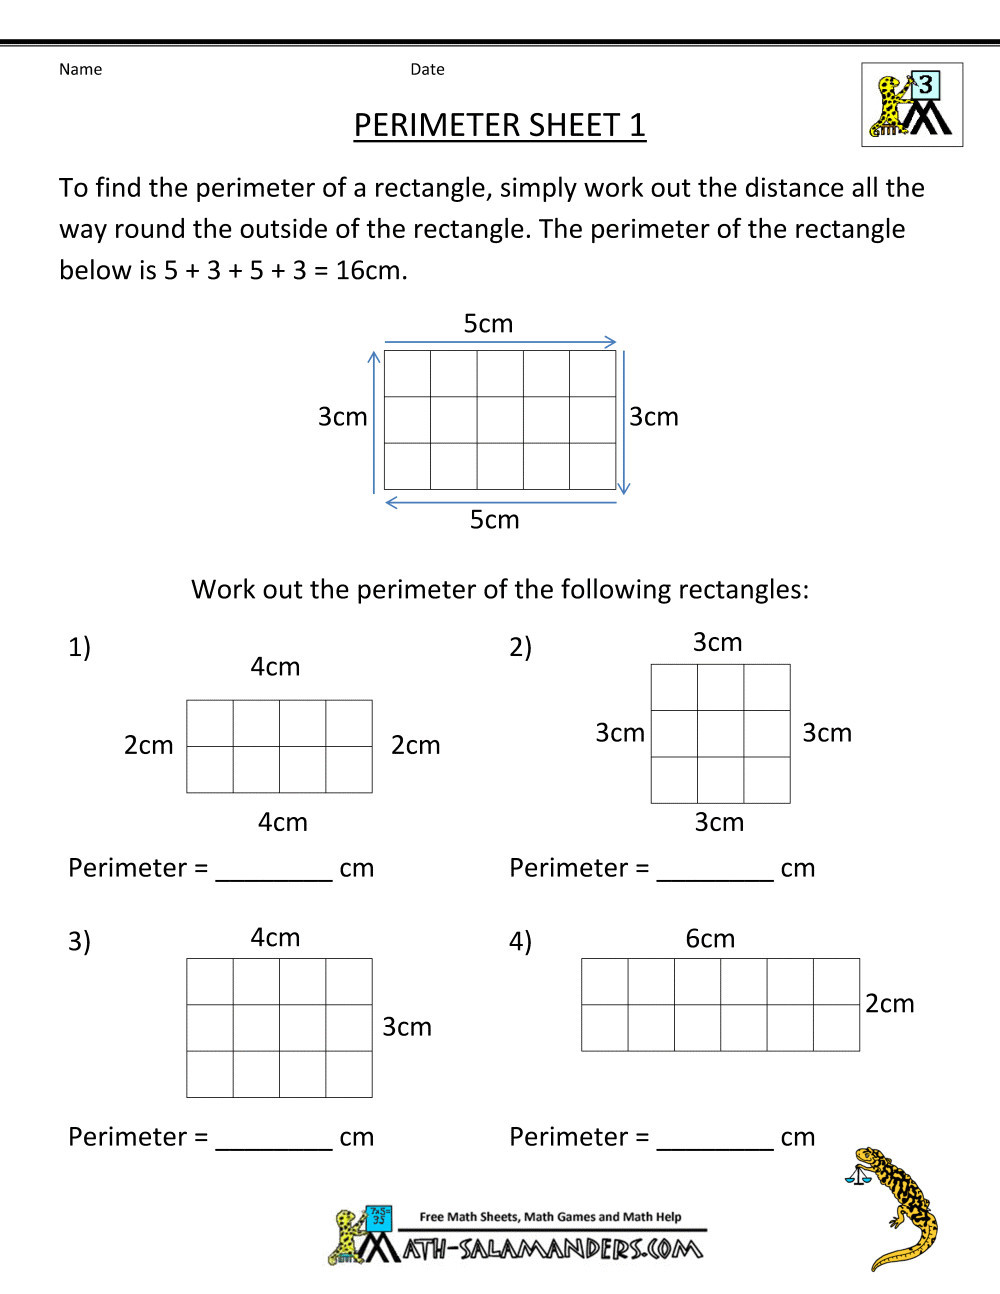 Perimeter Worksheets 3rd Grade Pdf 5 Free Math Worksheets Third Grade 3 Division Worksheets